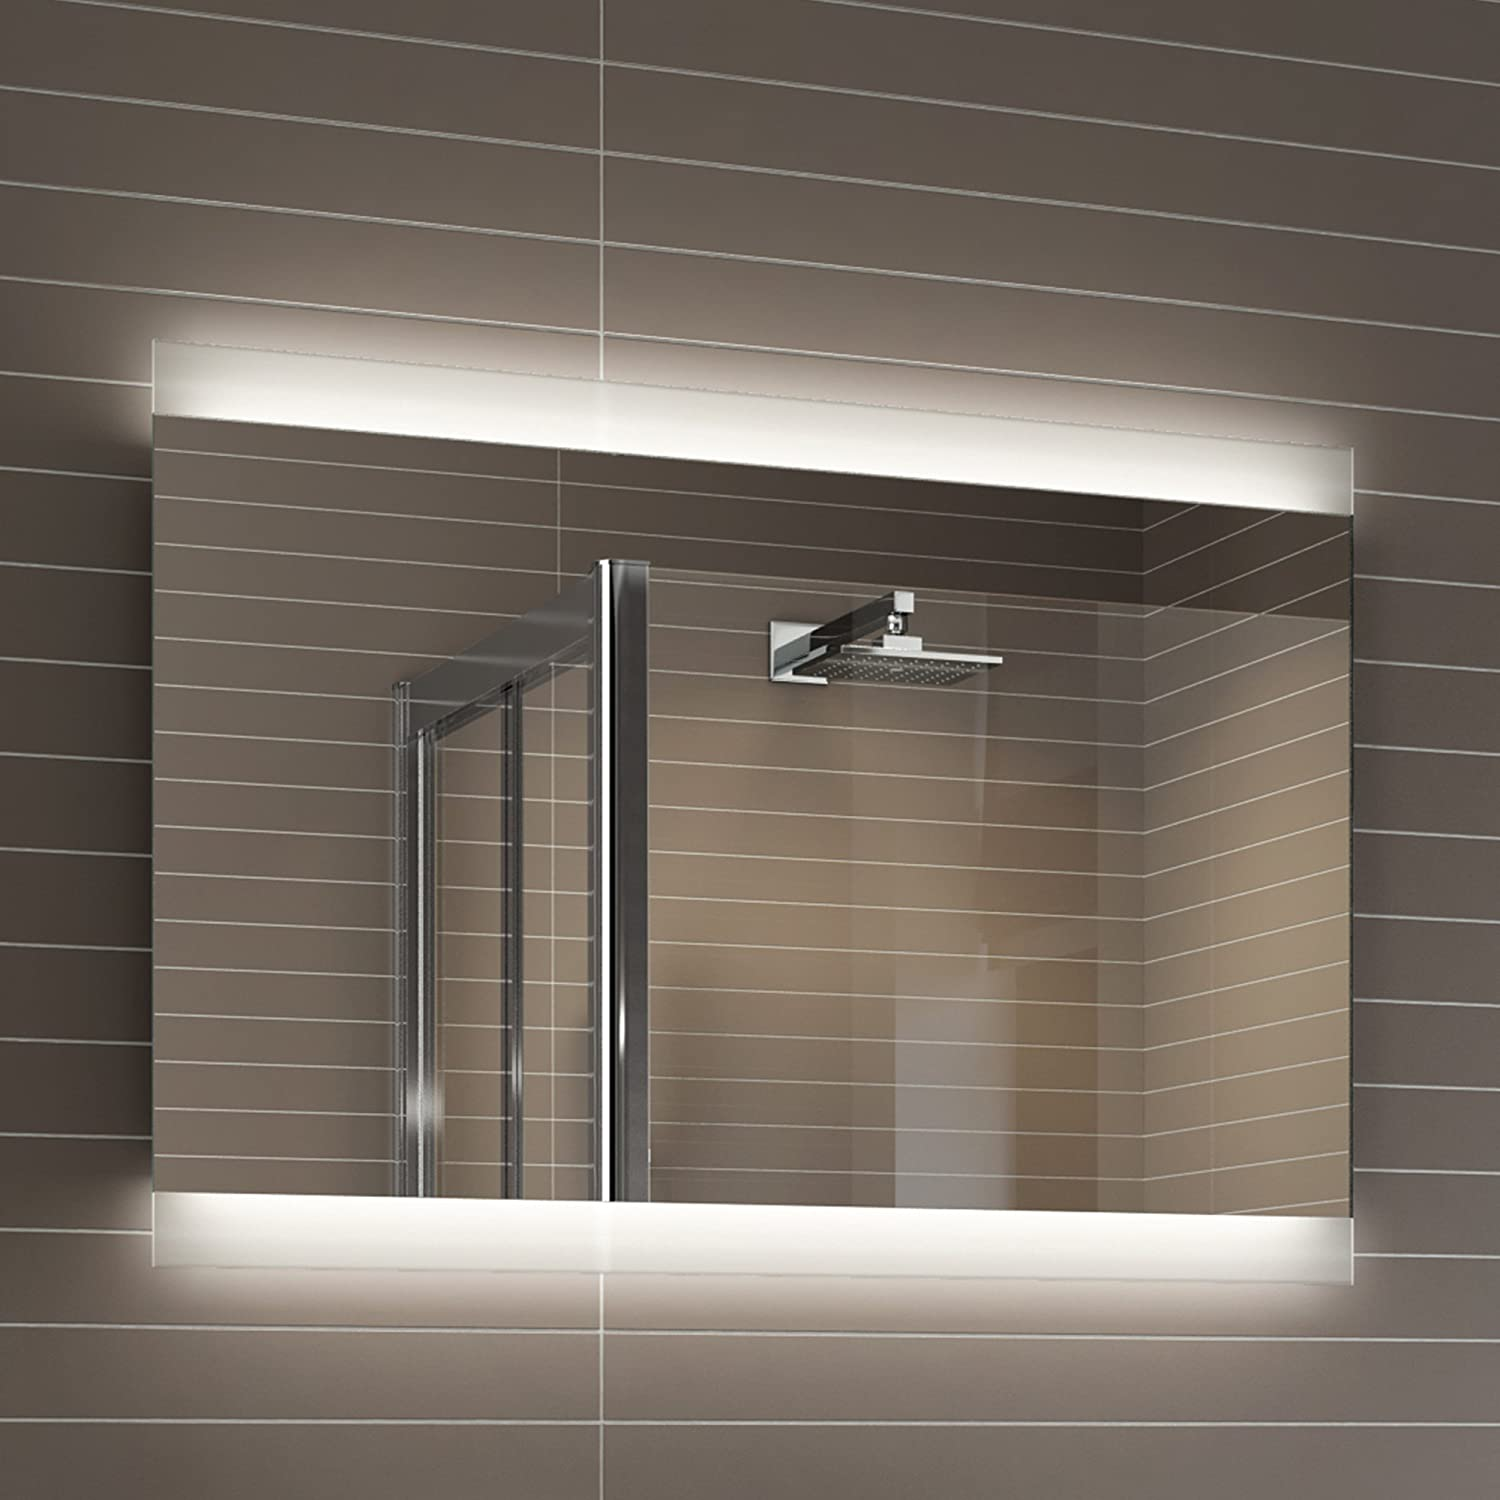 Led illuminated bathroom mirror my web value 700 x 500 mm designer illuminated led bathroom mirror light sensor demister ml5001 aloadofball Image collections